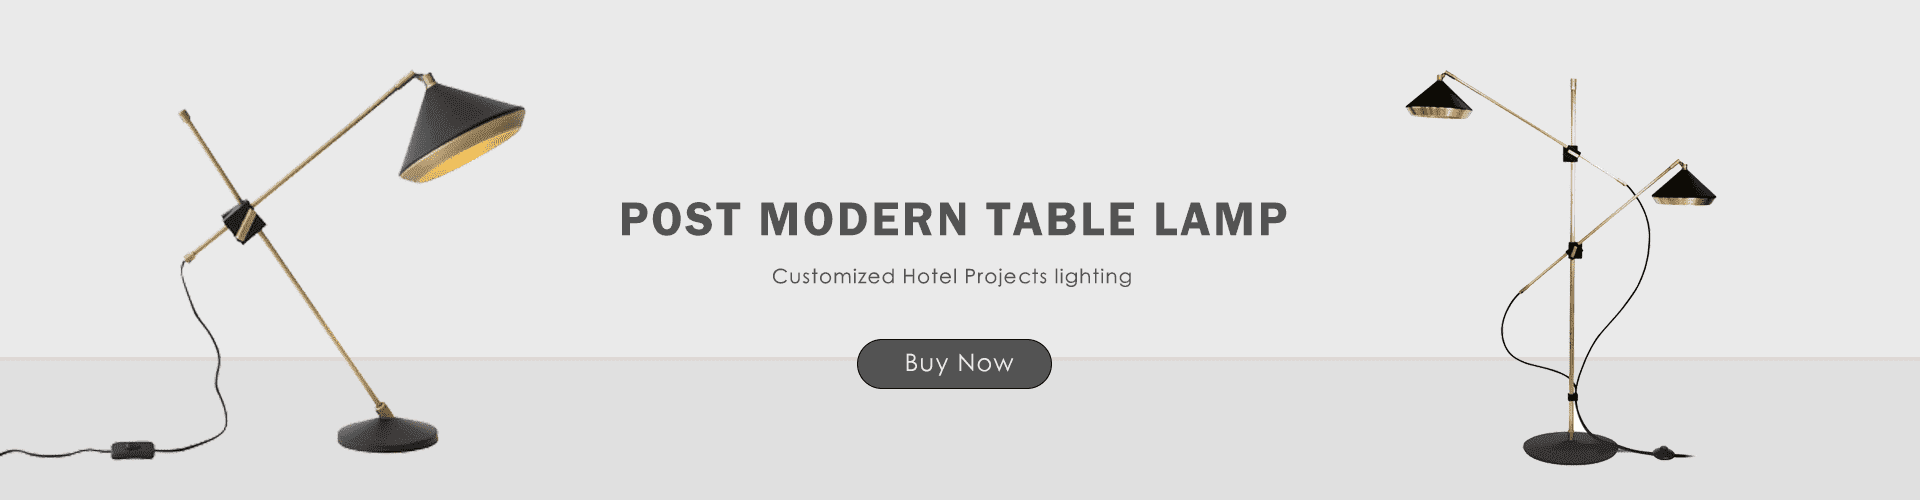 hotel projects table lamp